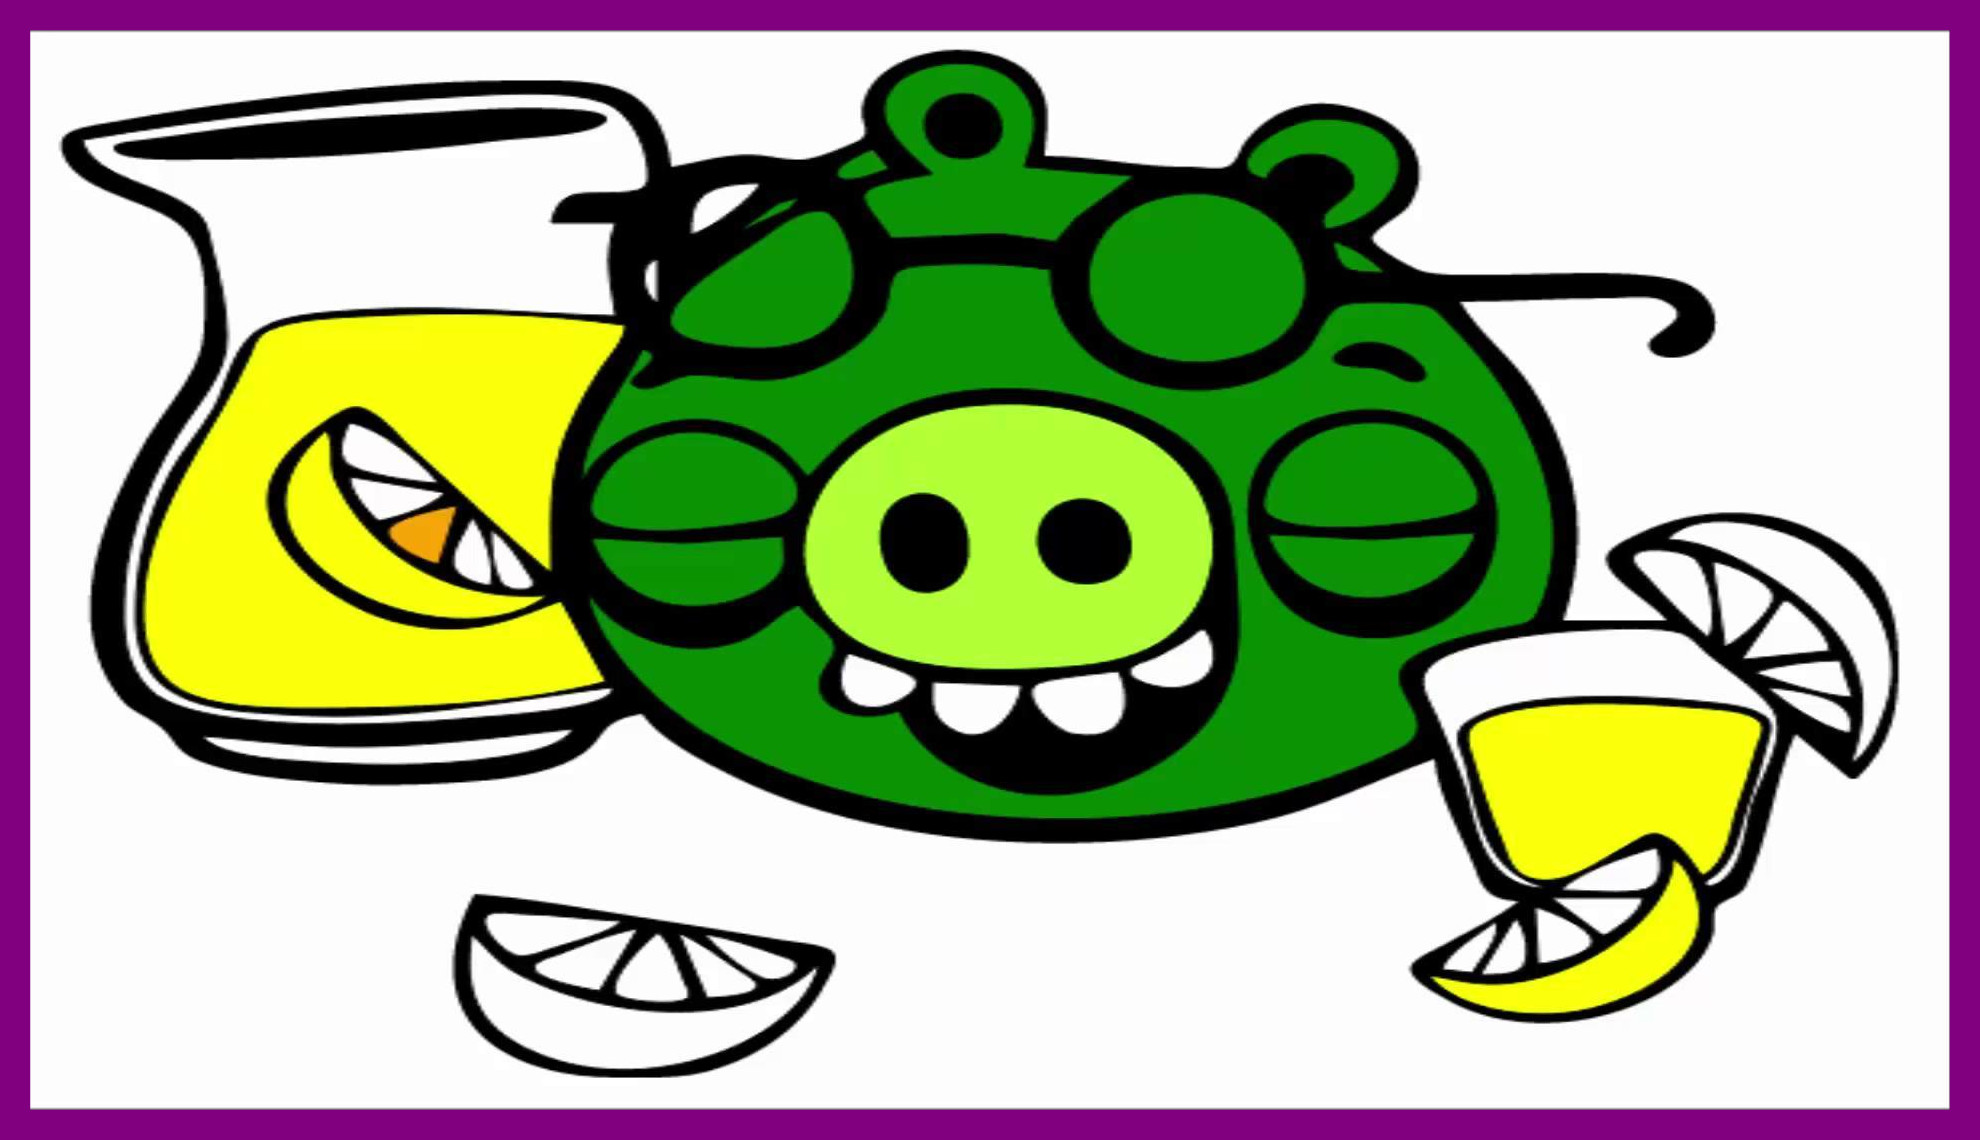 1980x1140 Printable New Angry Birds Pigs Coloring Pages [Printable